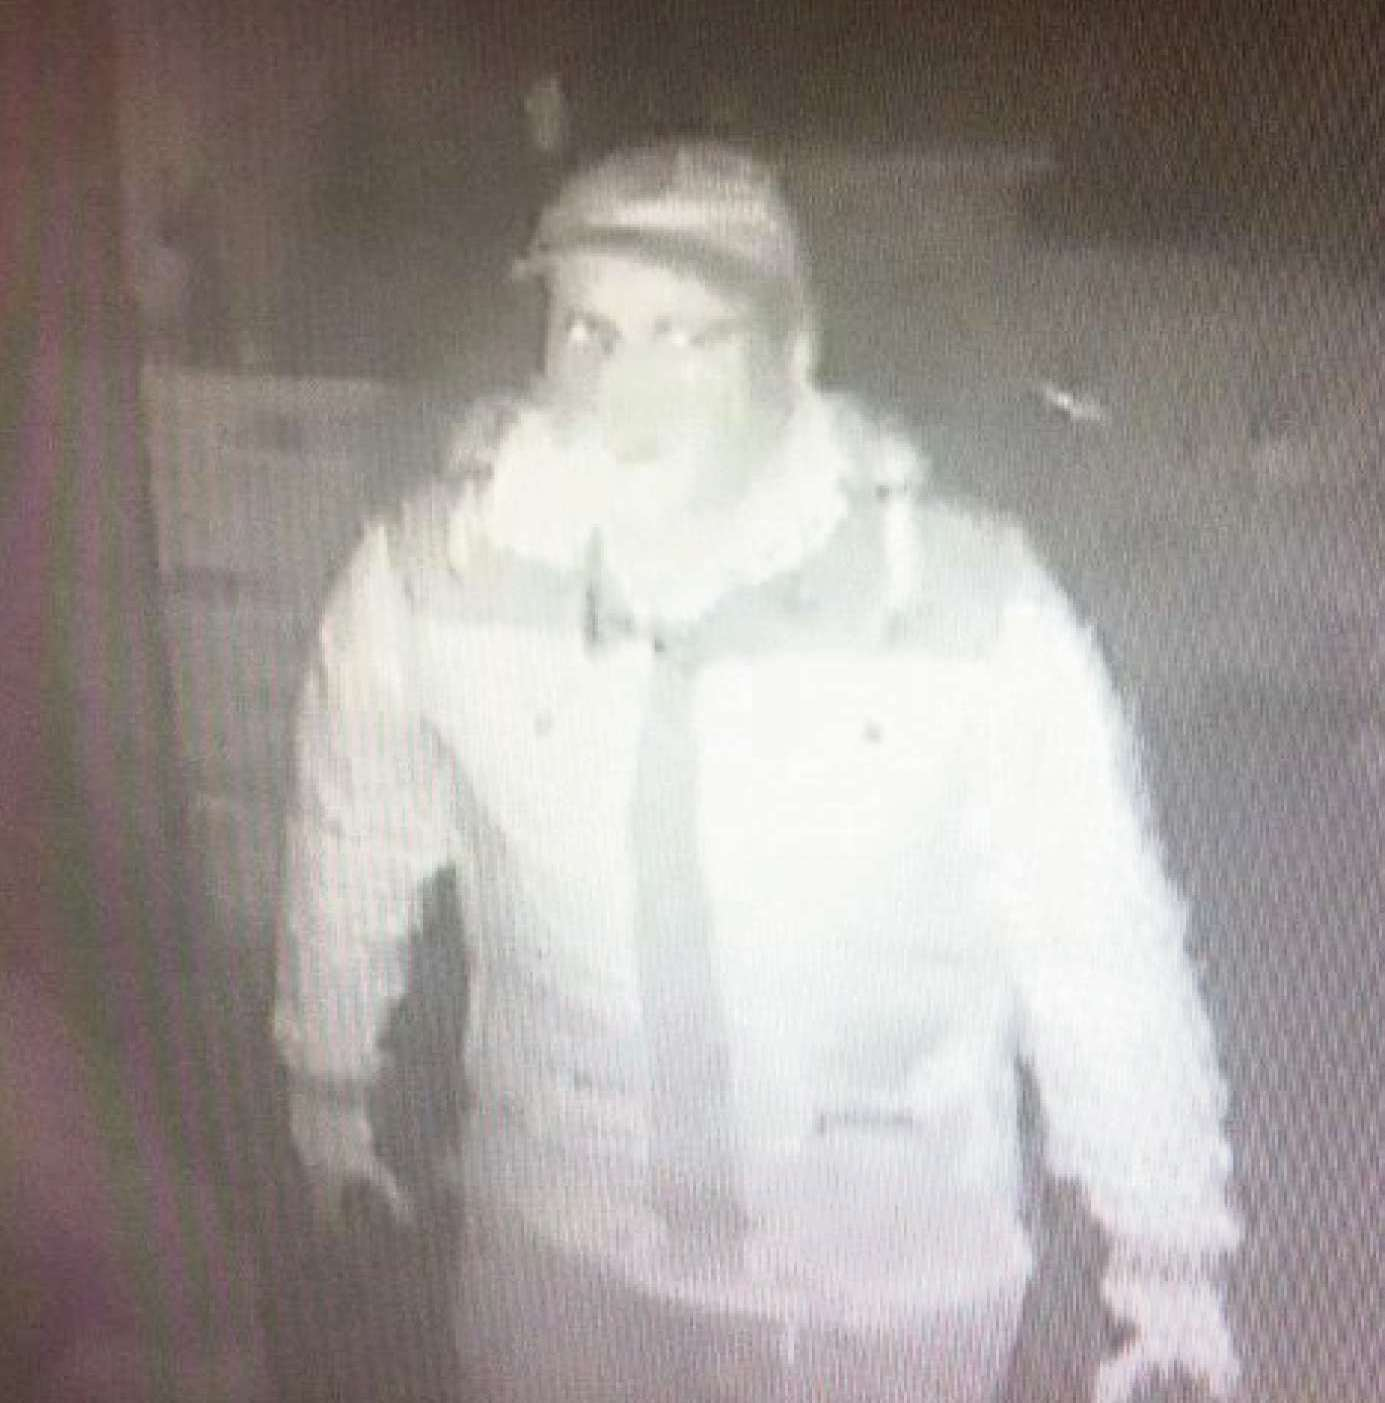 A CCTV image shows one of the men wanted in connection with the burglary at Cross Lanes Organic Farm Shop